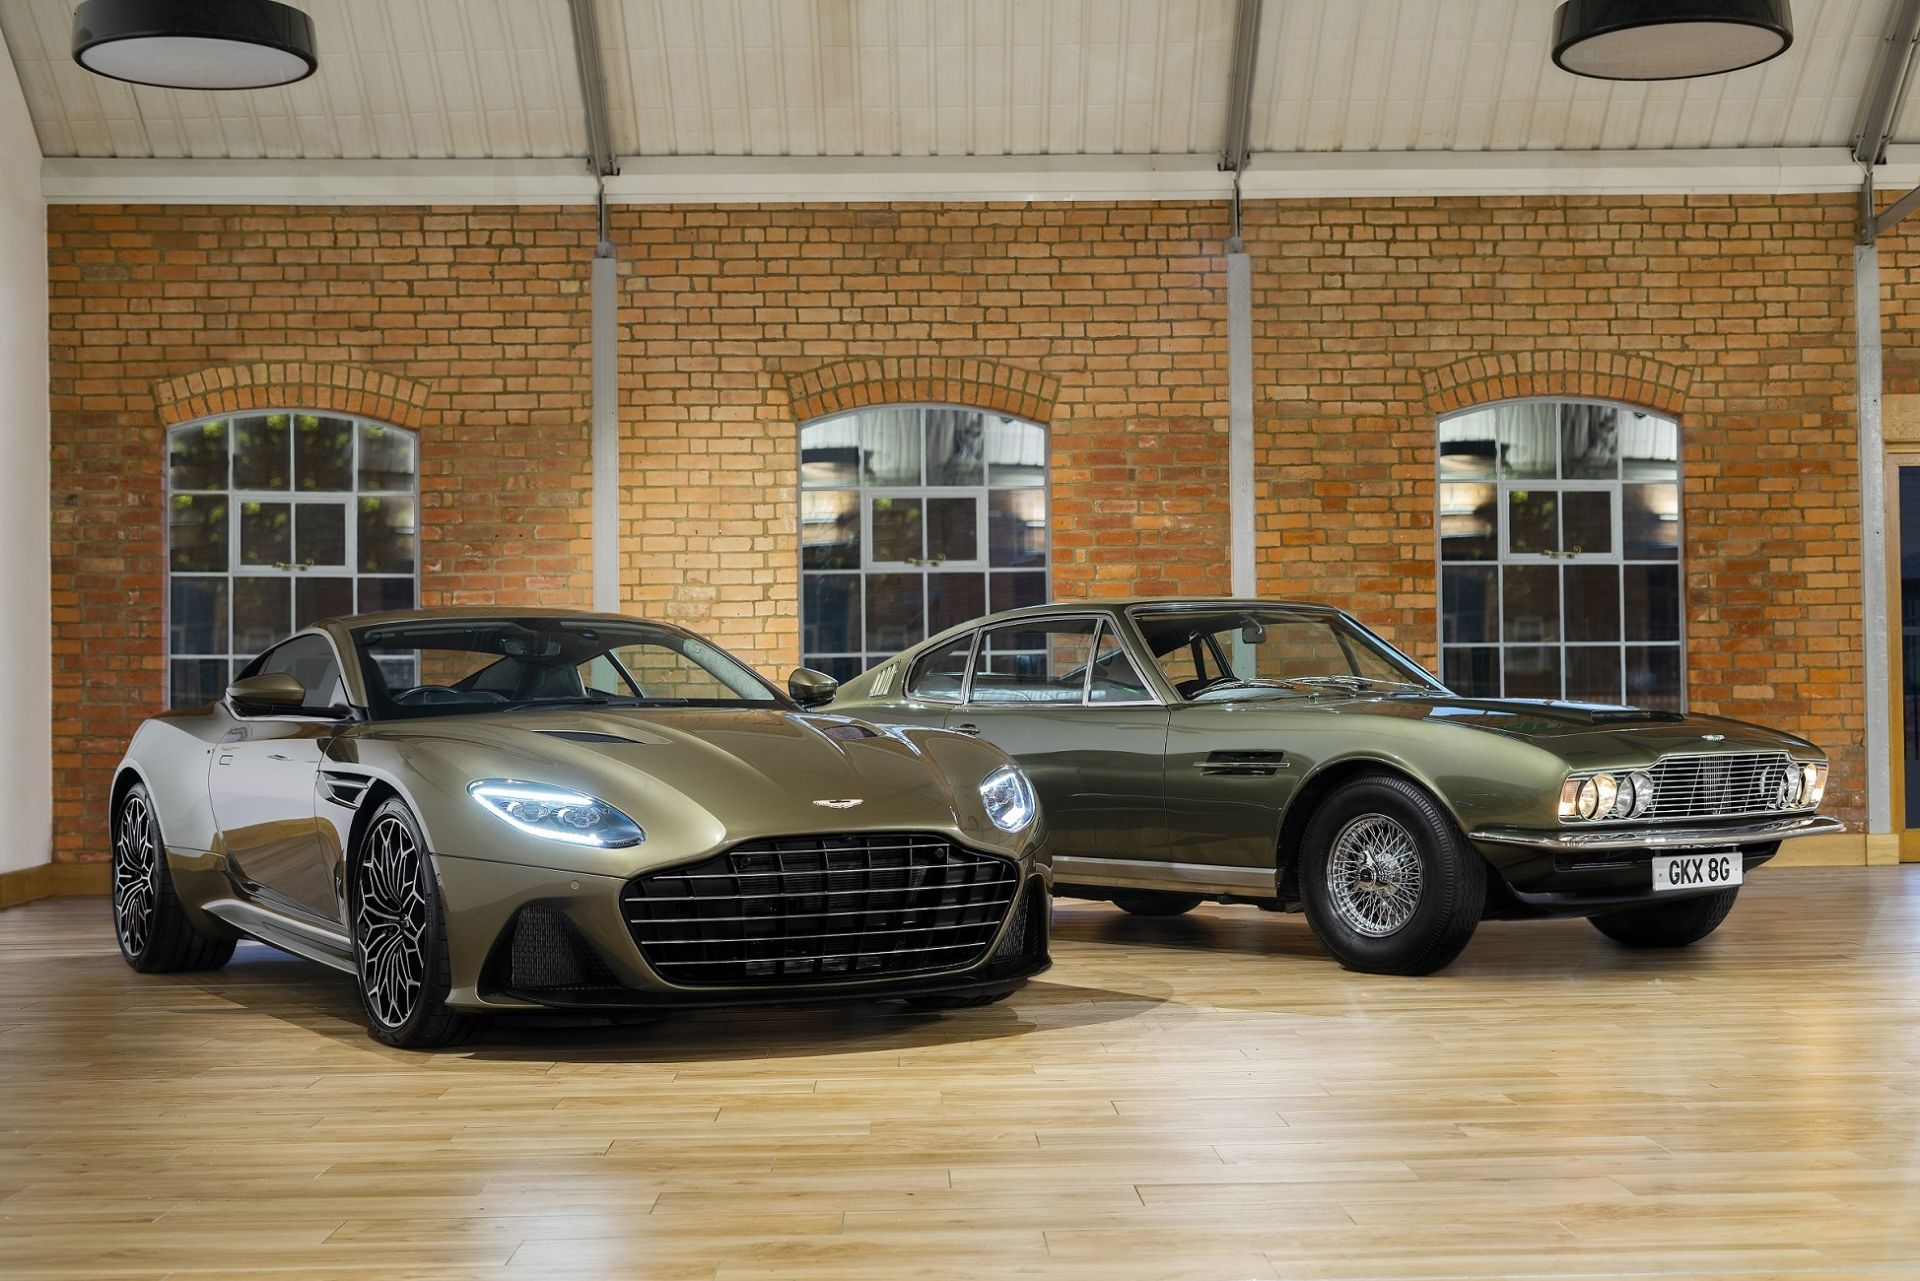 Special Edition Aston Martin DBS Superleggera Pays Tribute To James Bond